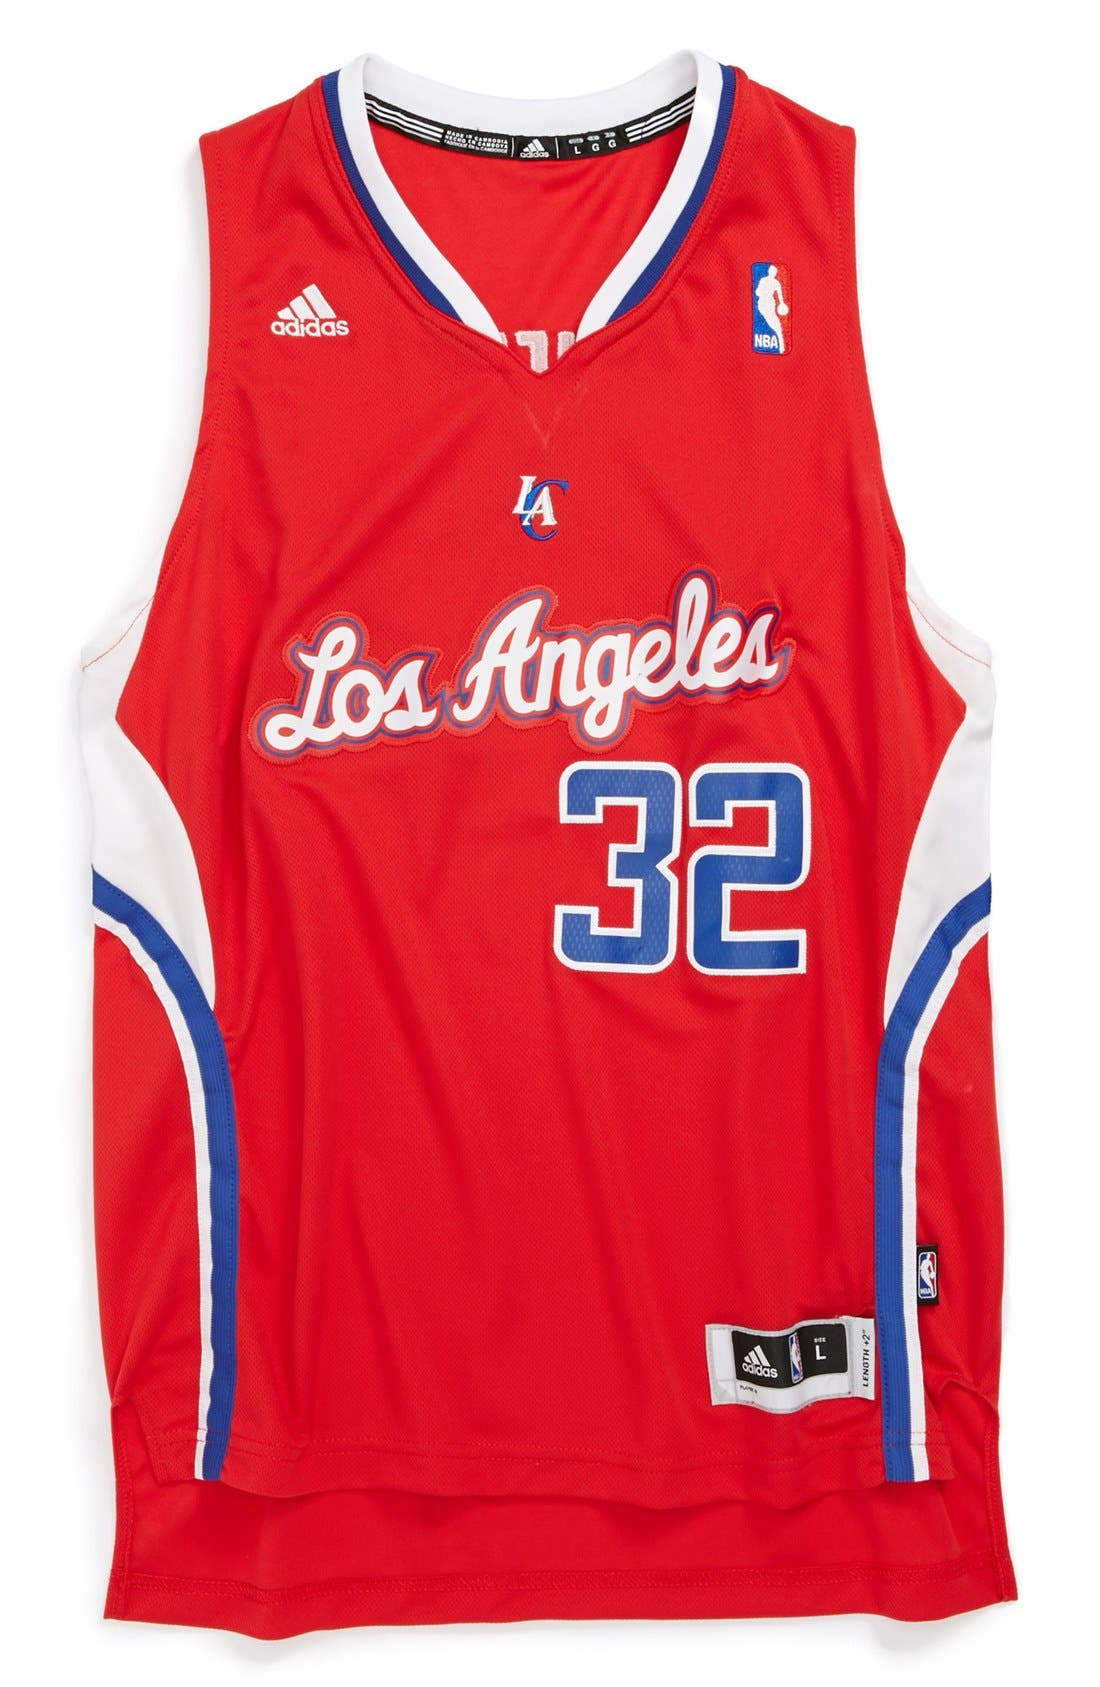 Main Image - adidas 'Los Angeles Clippers, Blake Griffin - Swingman Road' Jersey (Big Boys)